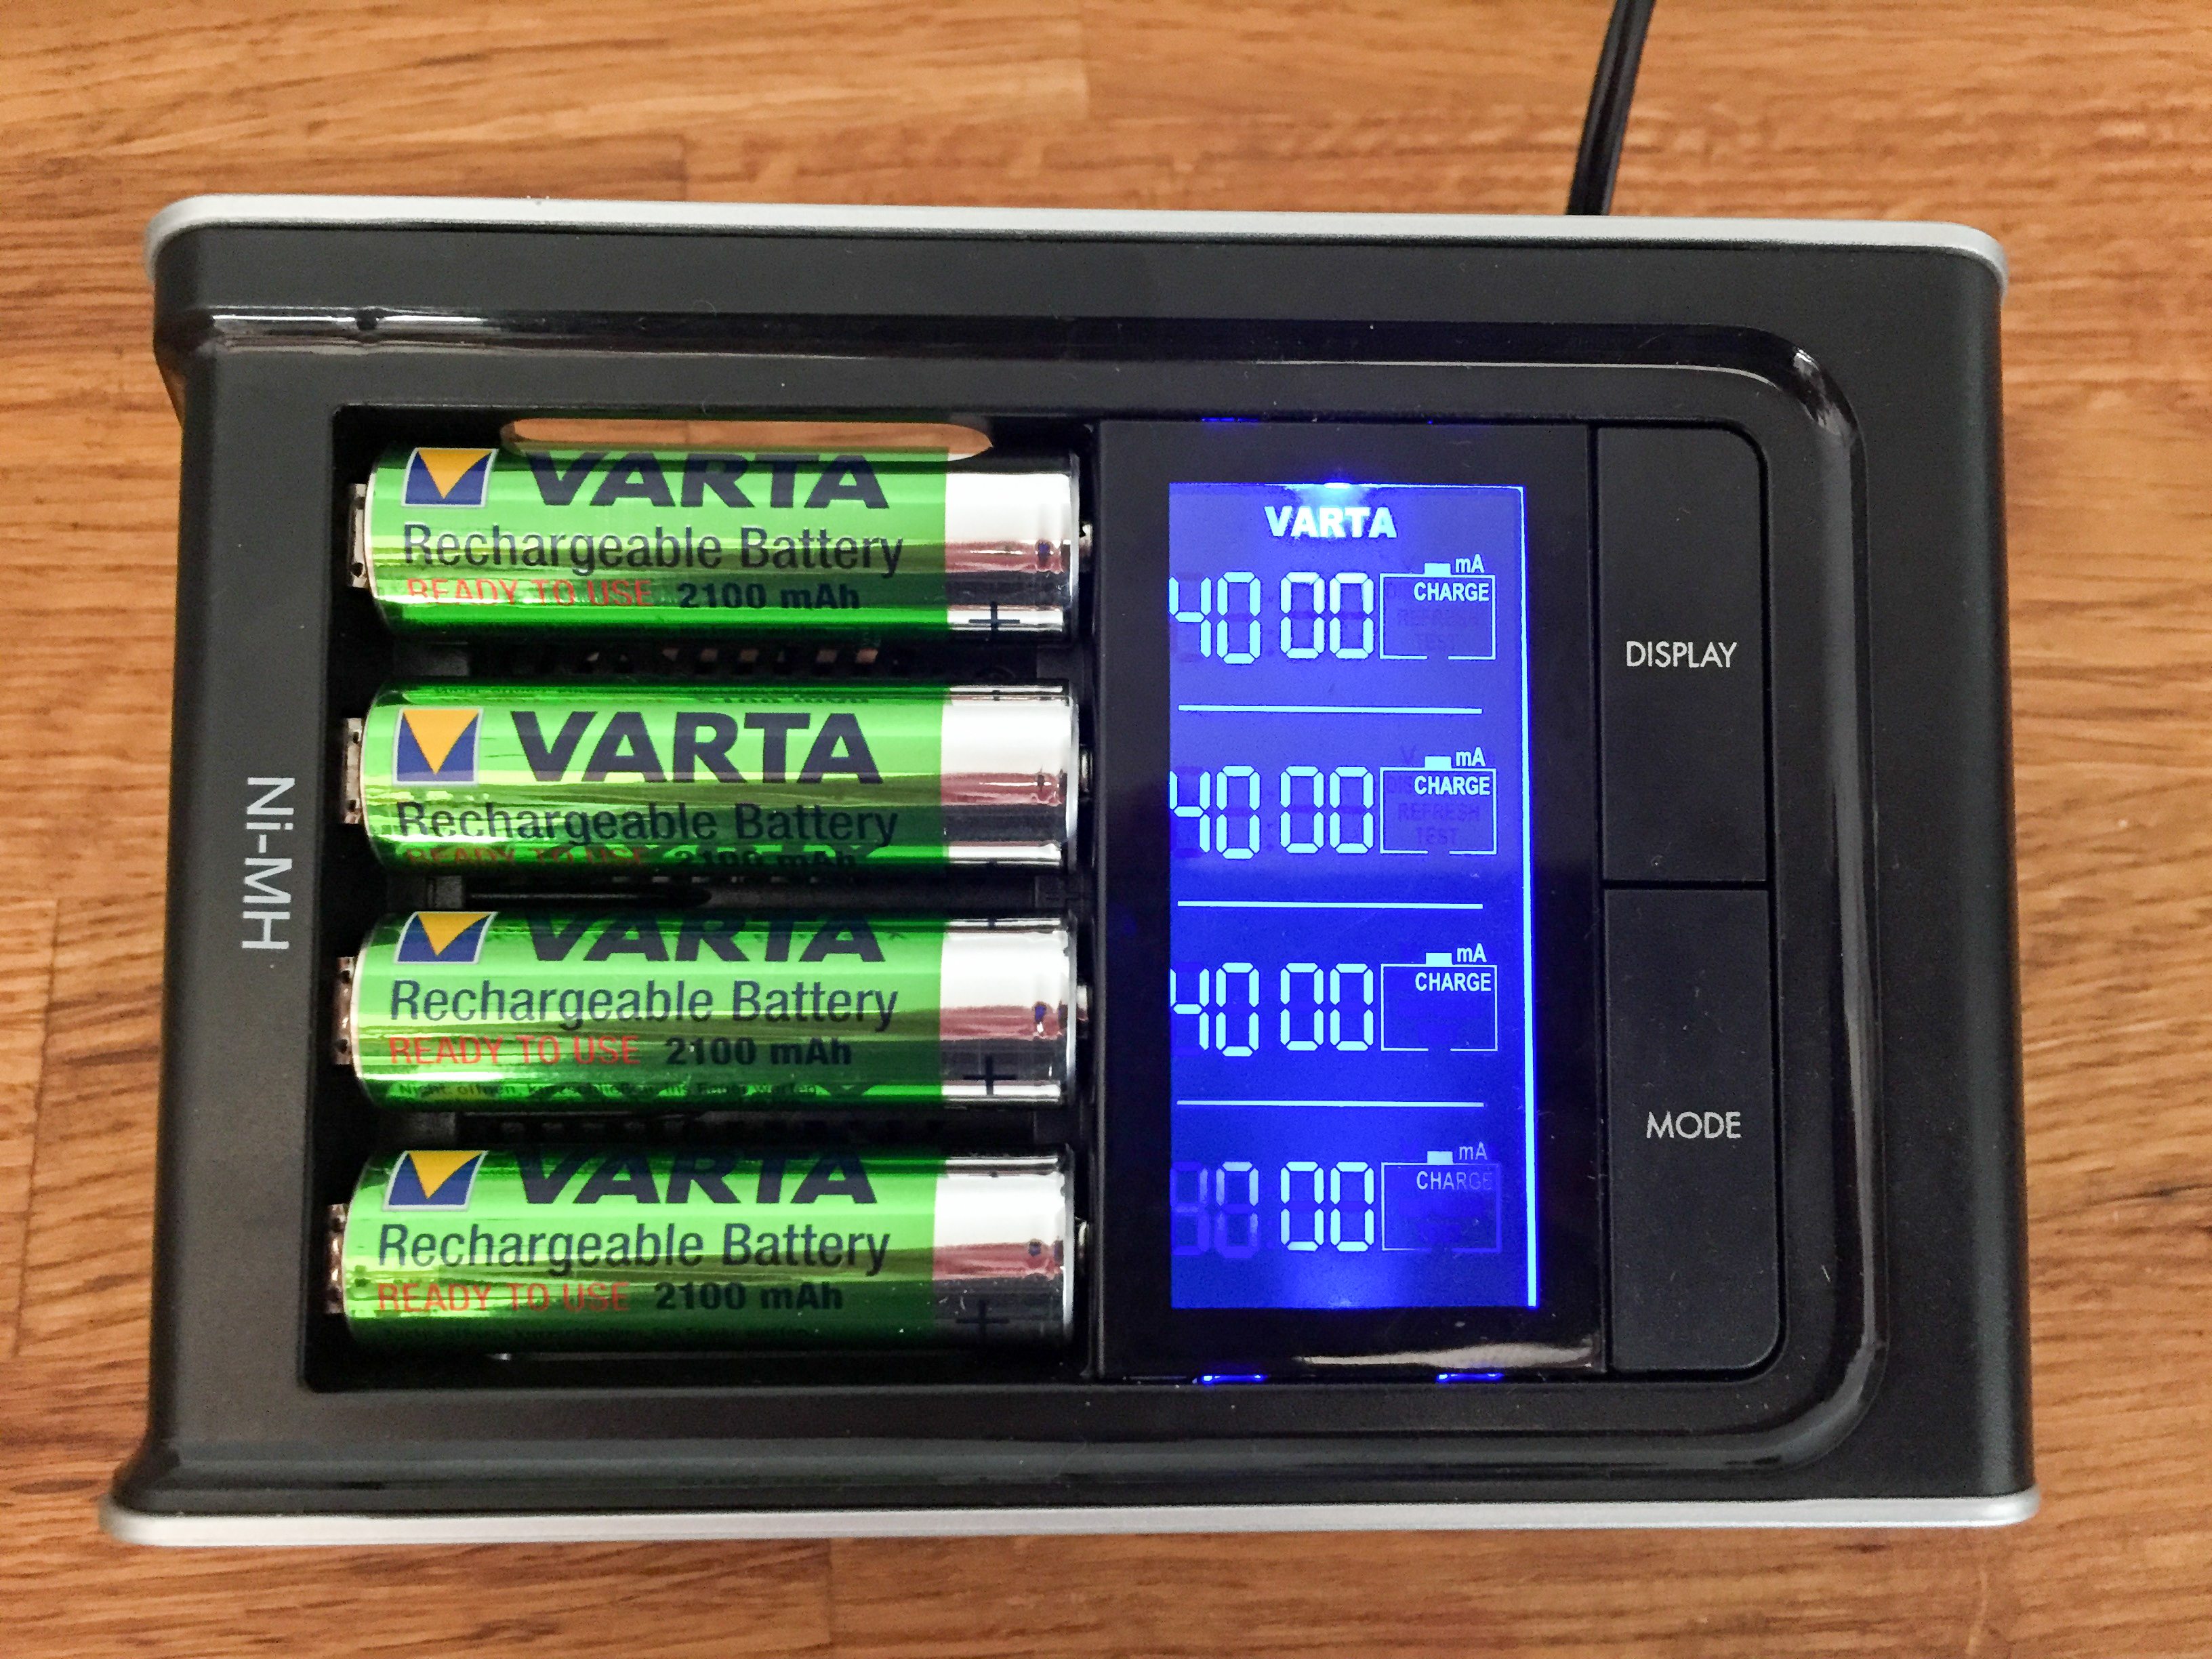 Varta 57285 Charger top view